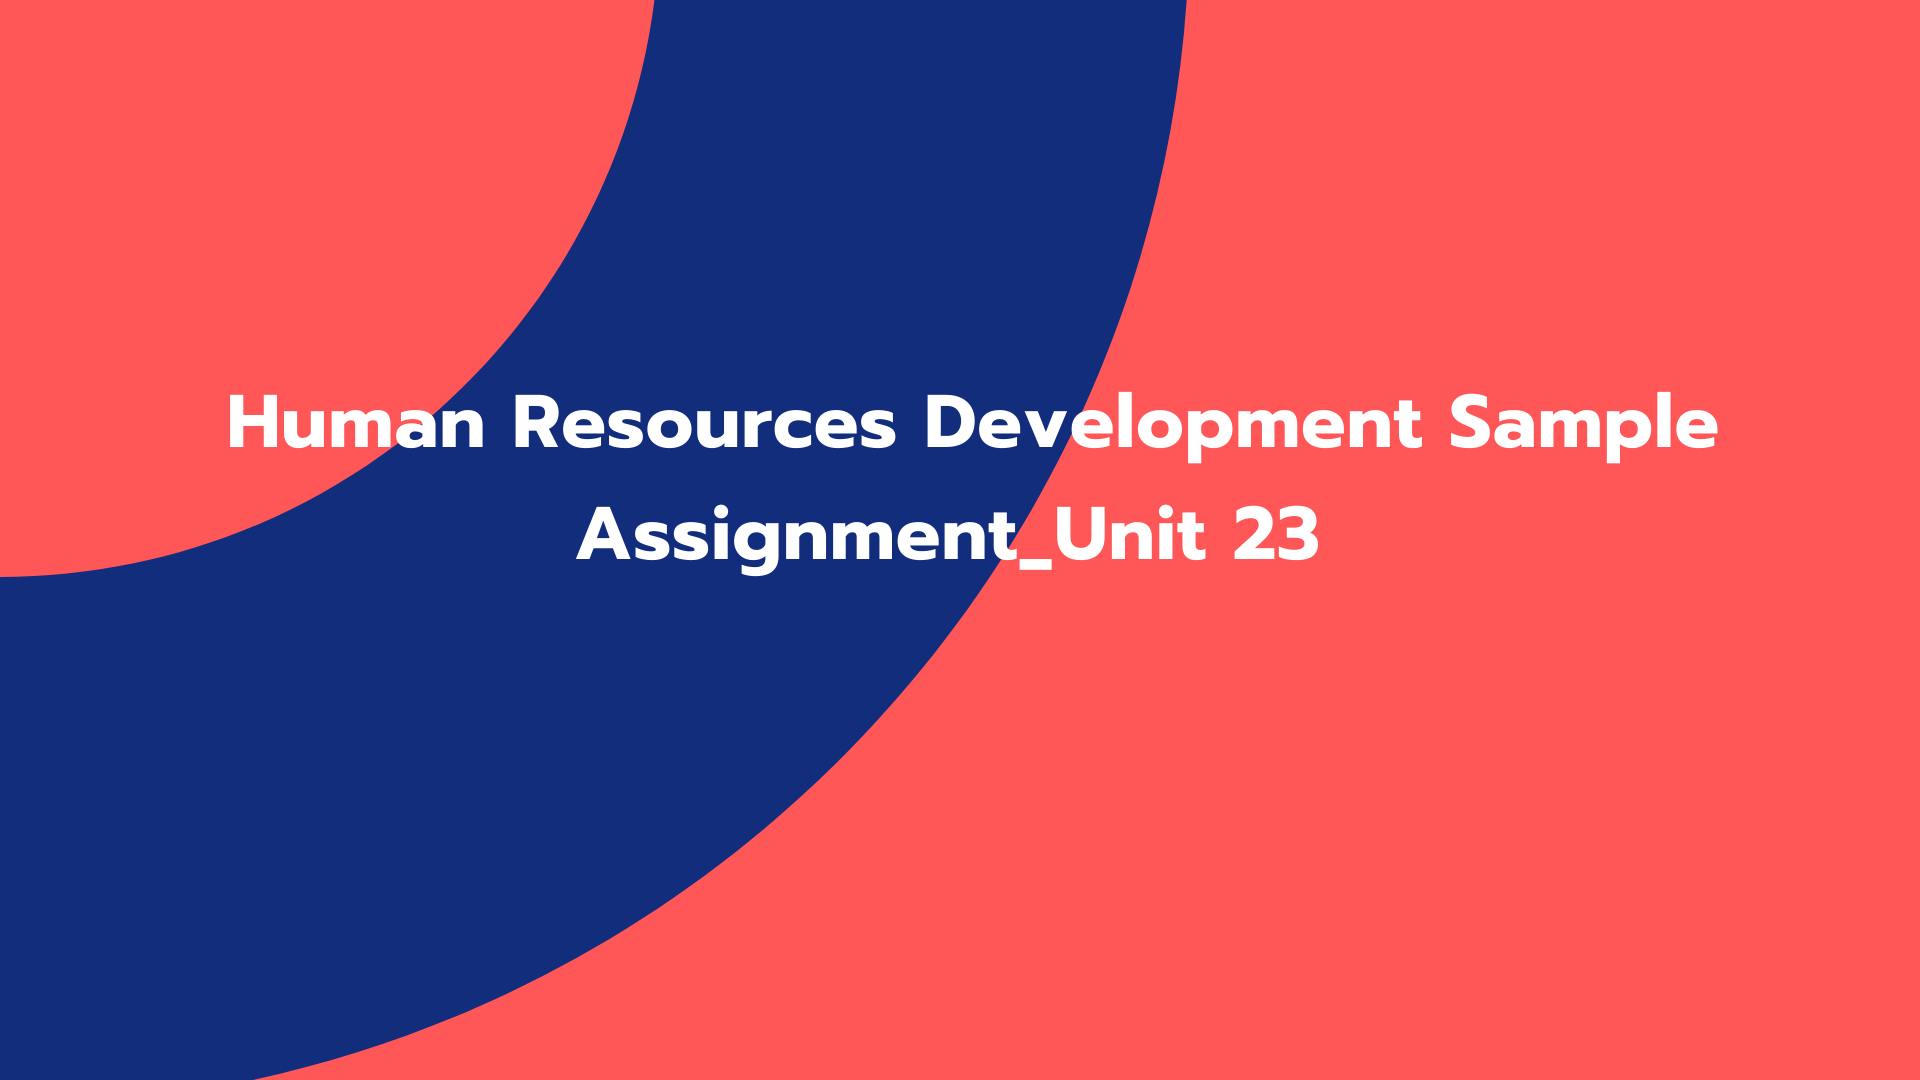 Human Resources Development Sample Assignment_Unit 23